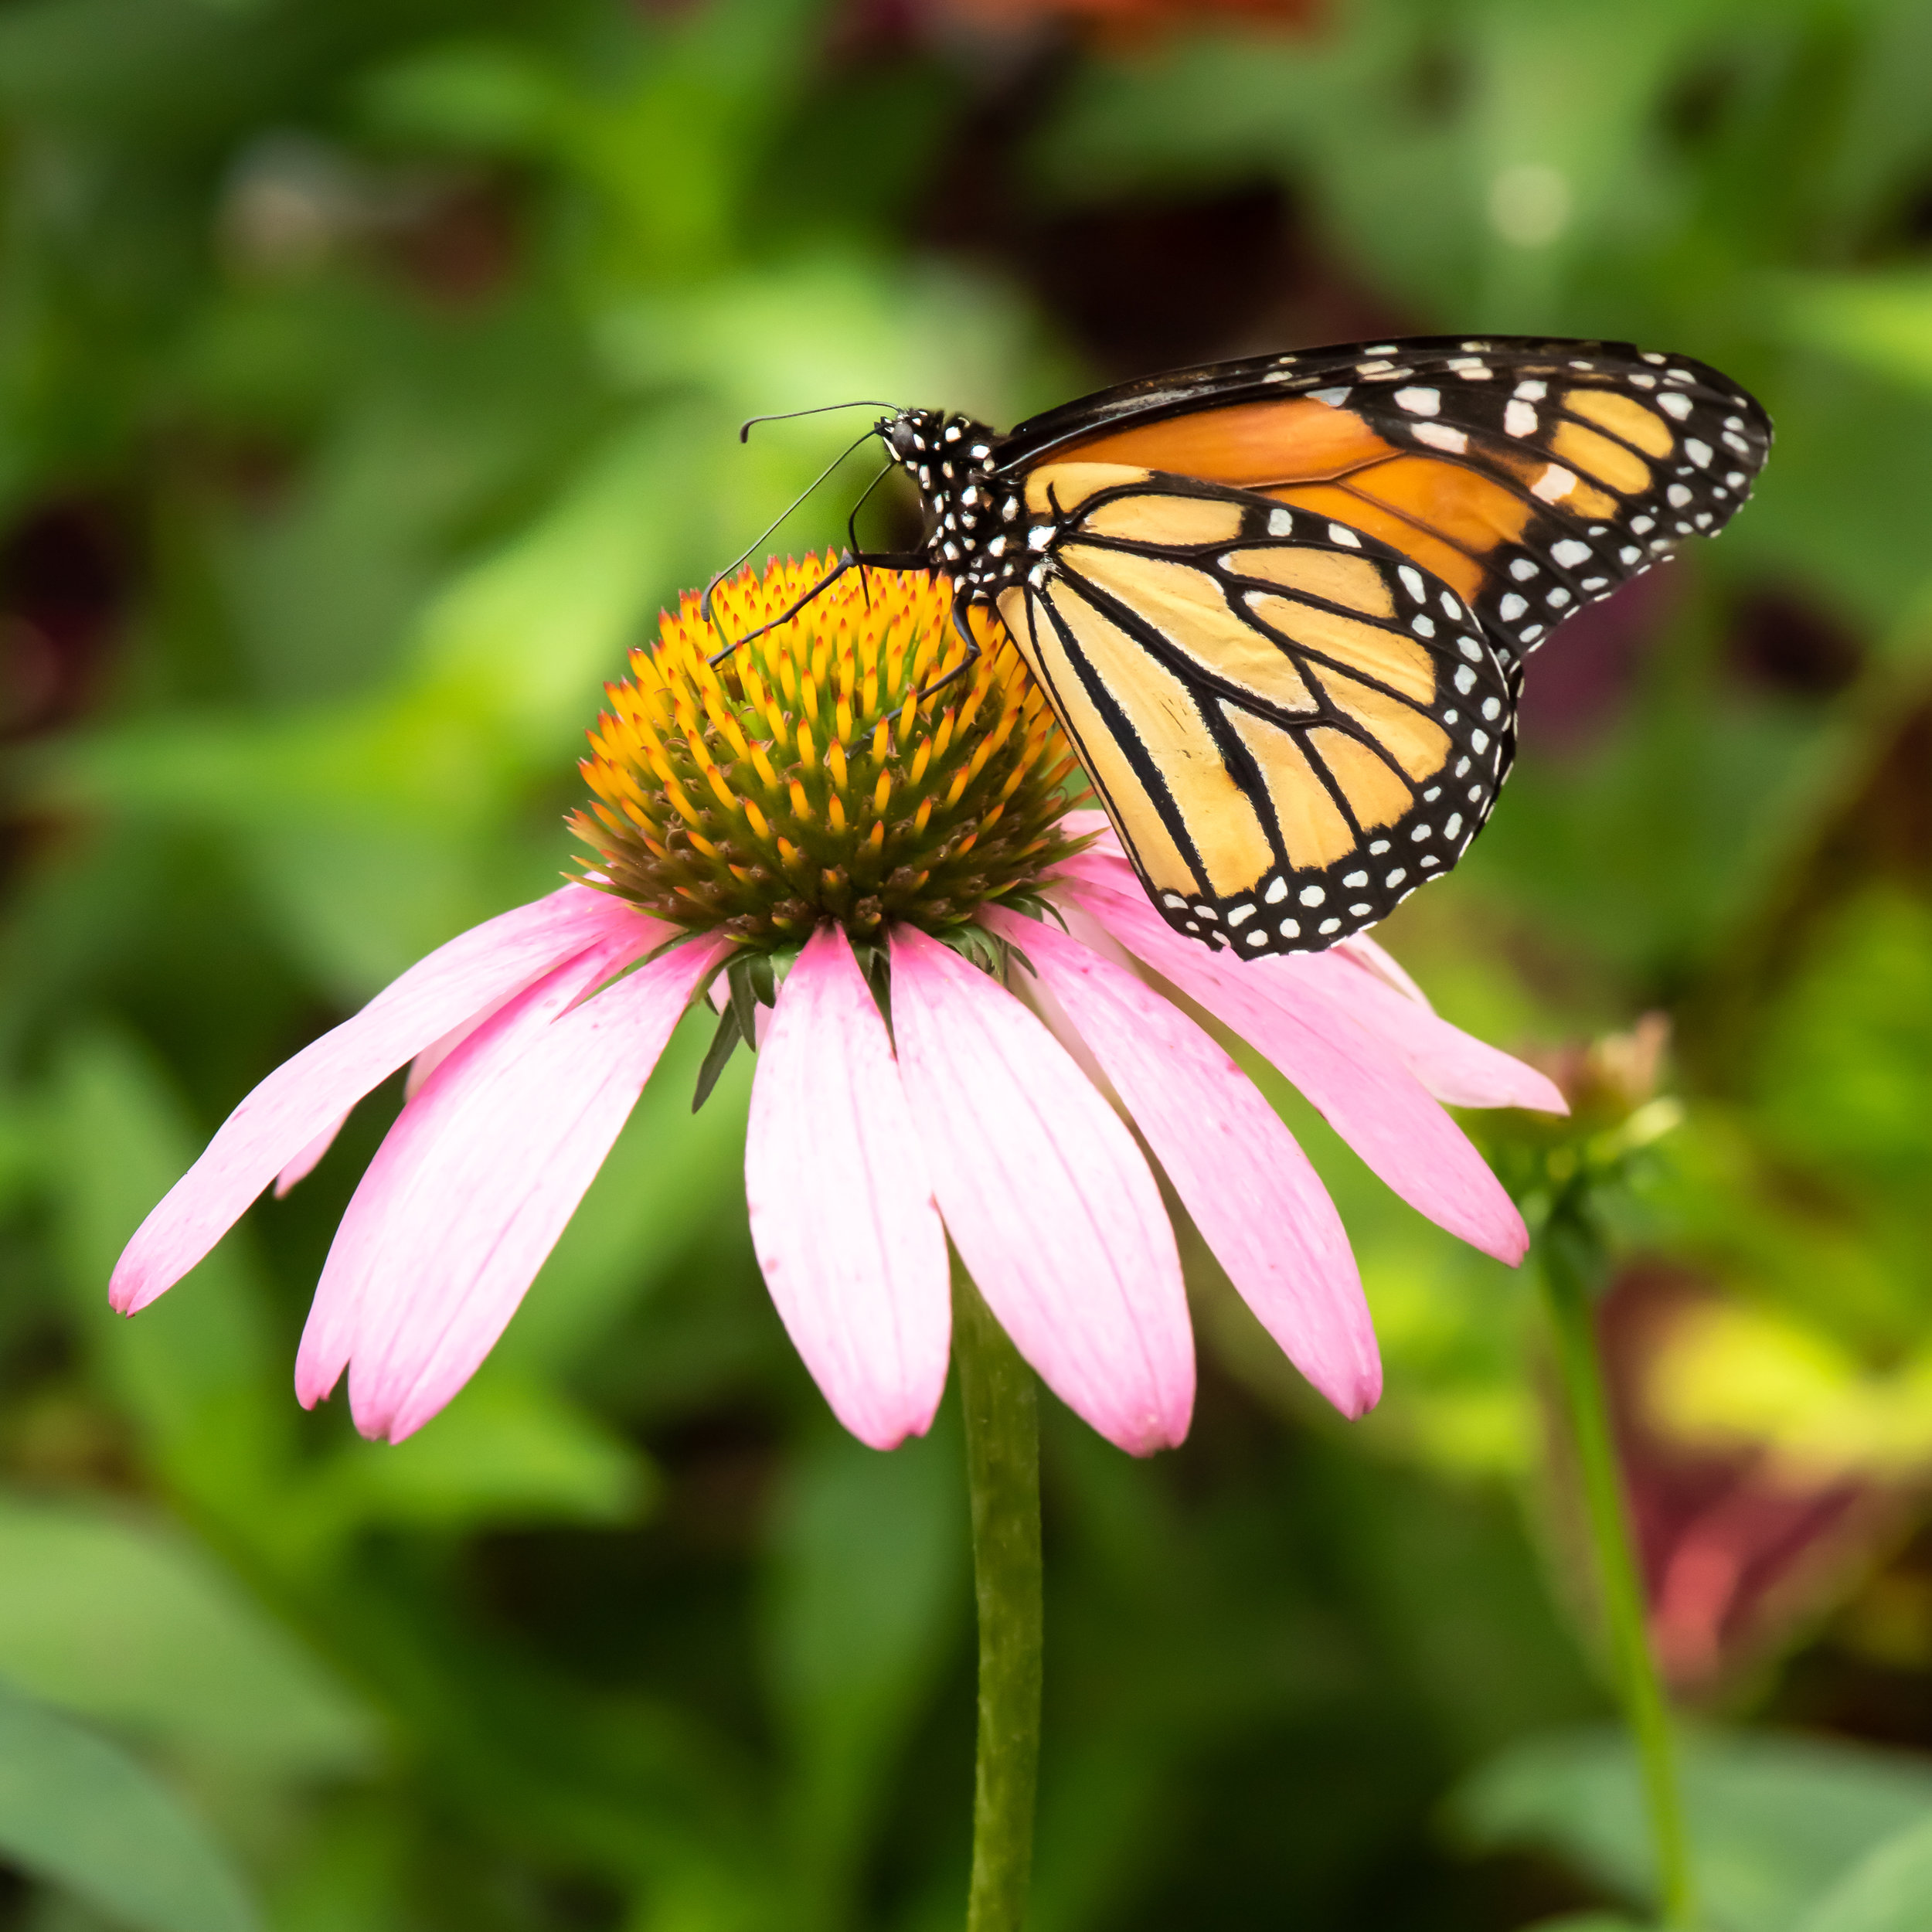 Purple Cone flower, with a common Tiger Butterfly.